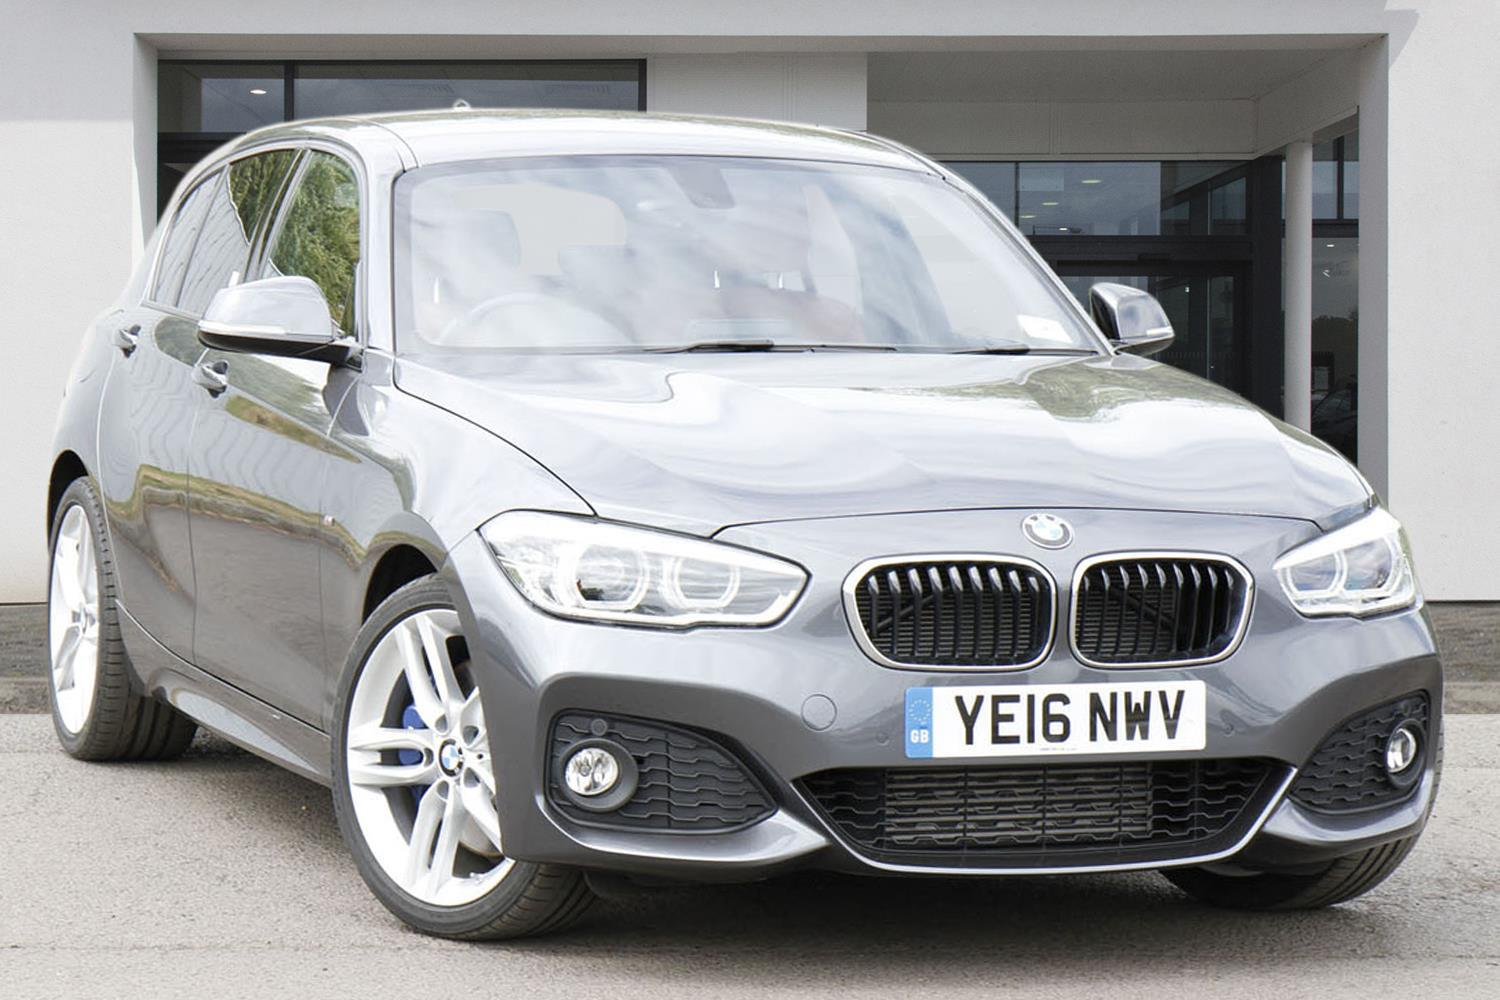 BMW 1 Series 5-door Sports Hatch YE16NWV - Image 1